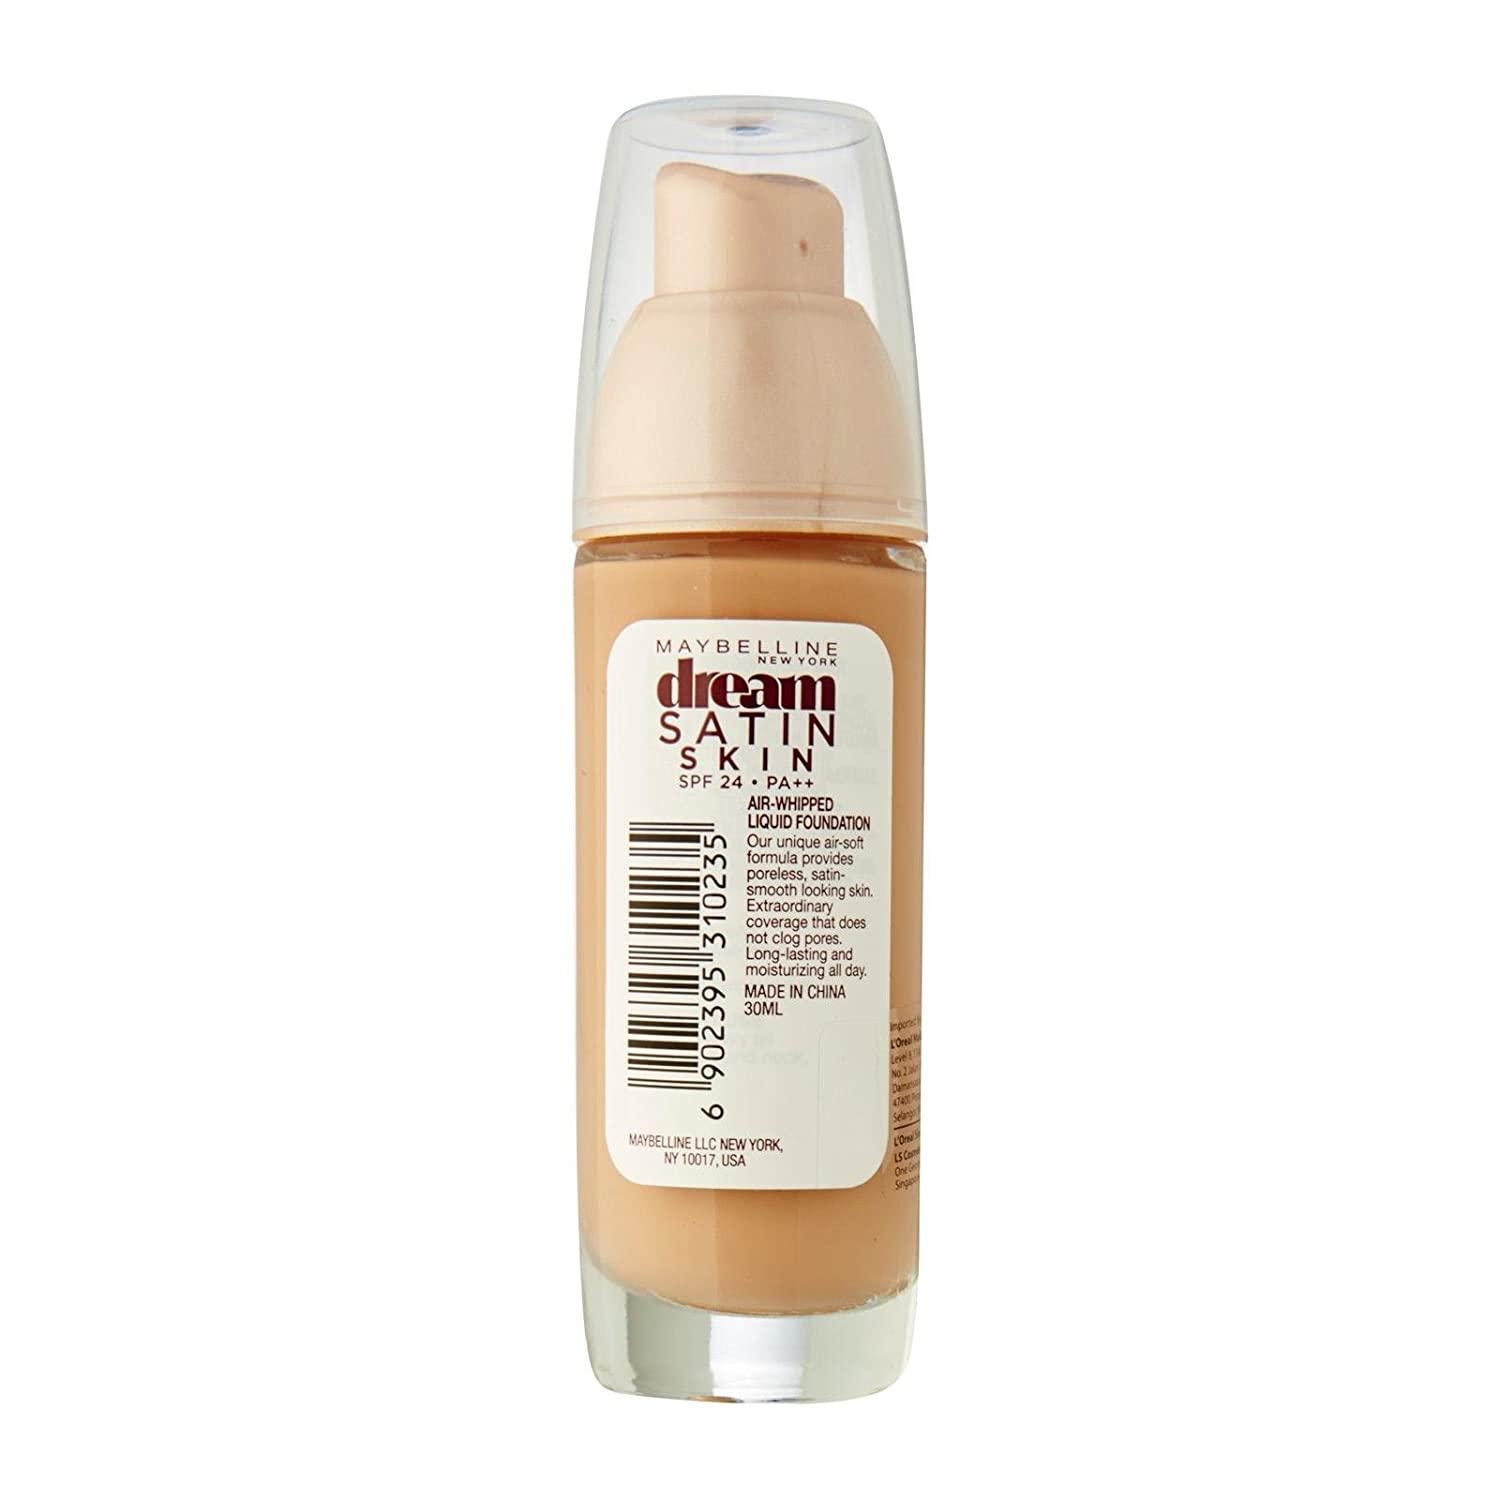 Buy Maybelline New York Dream Satin Foundation 30ml Online At Low Two Way Cake 01 Light Prices In India